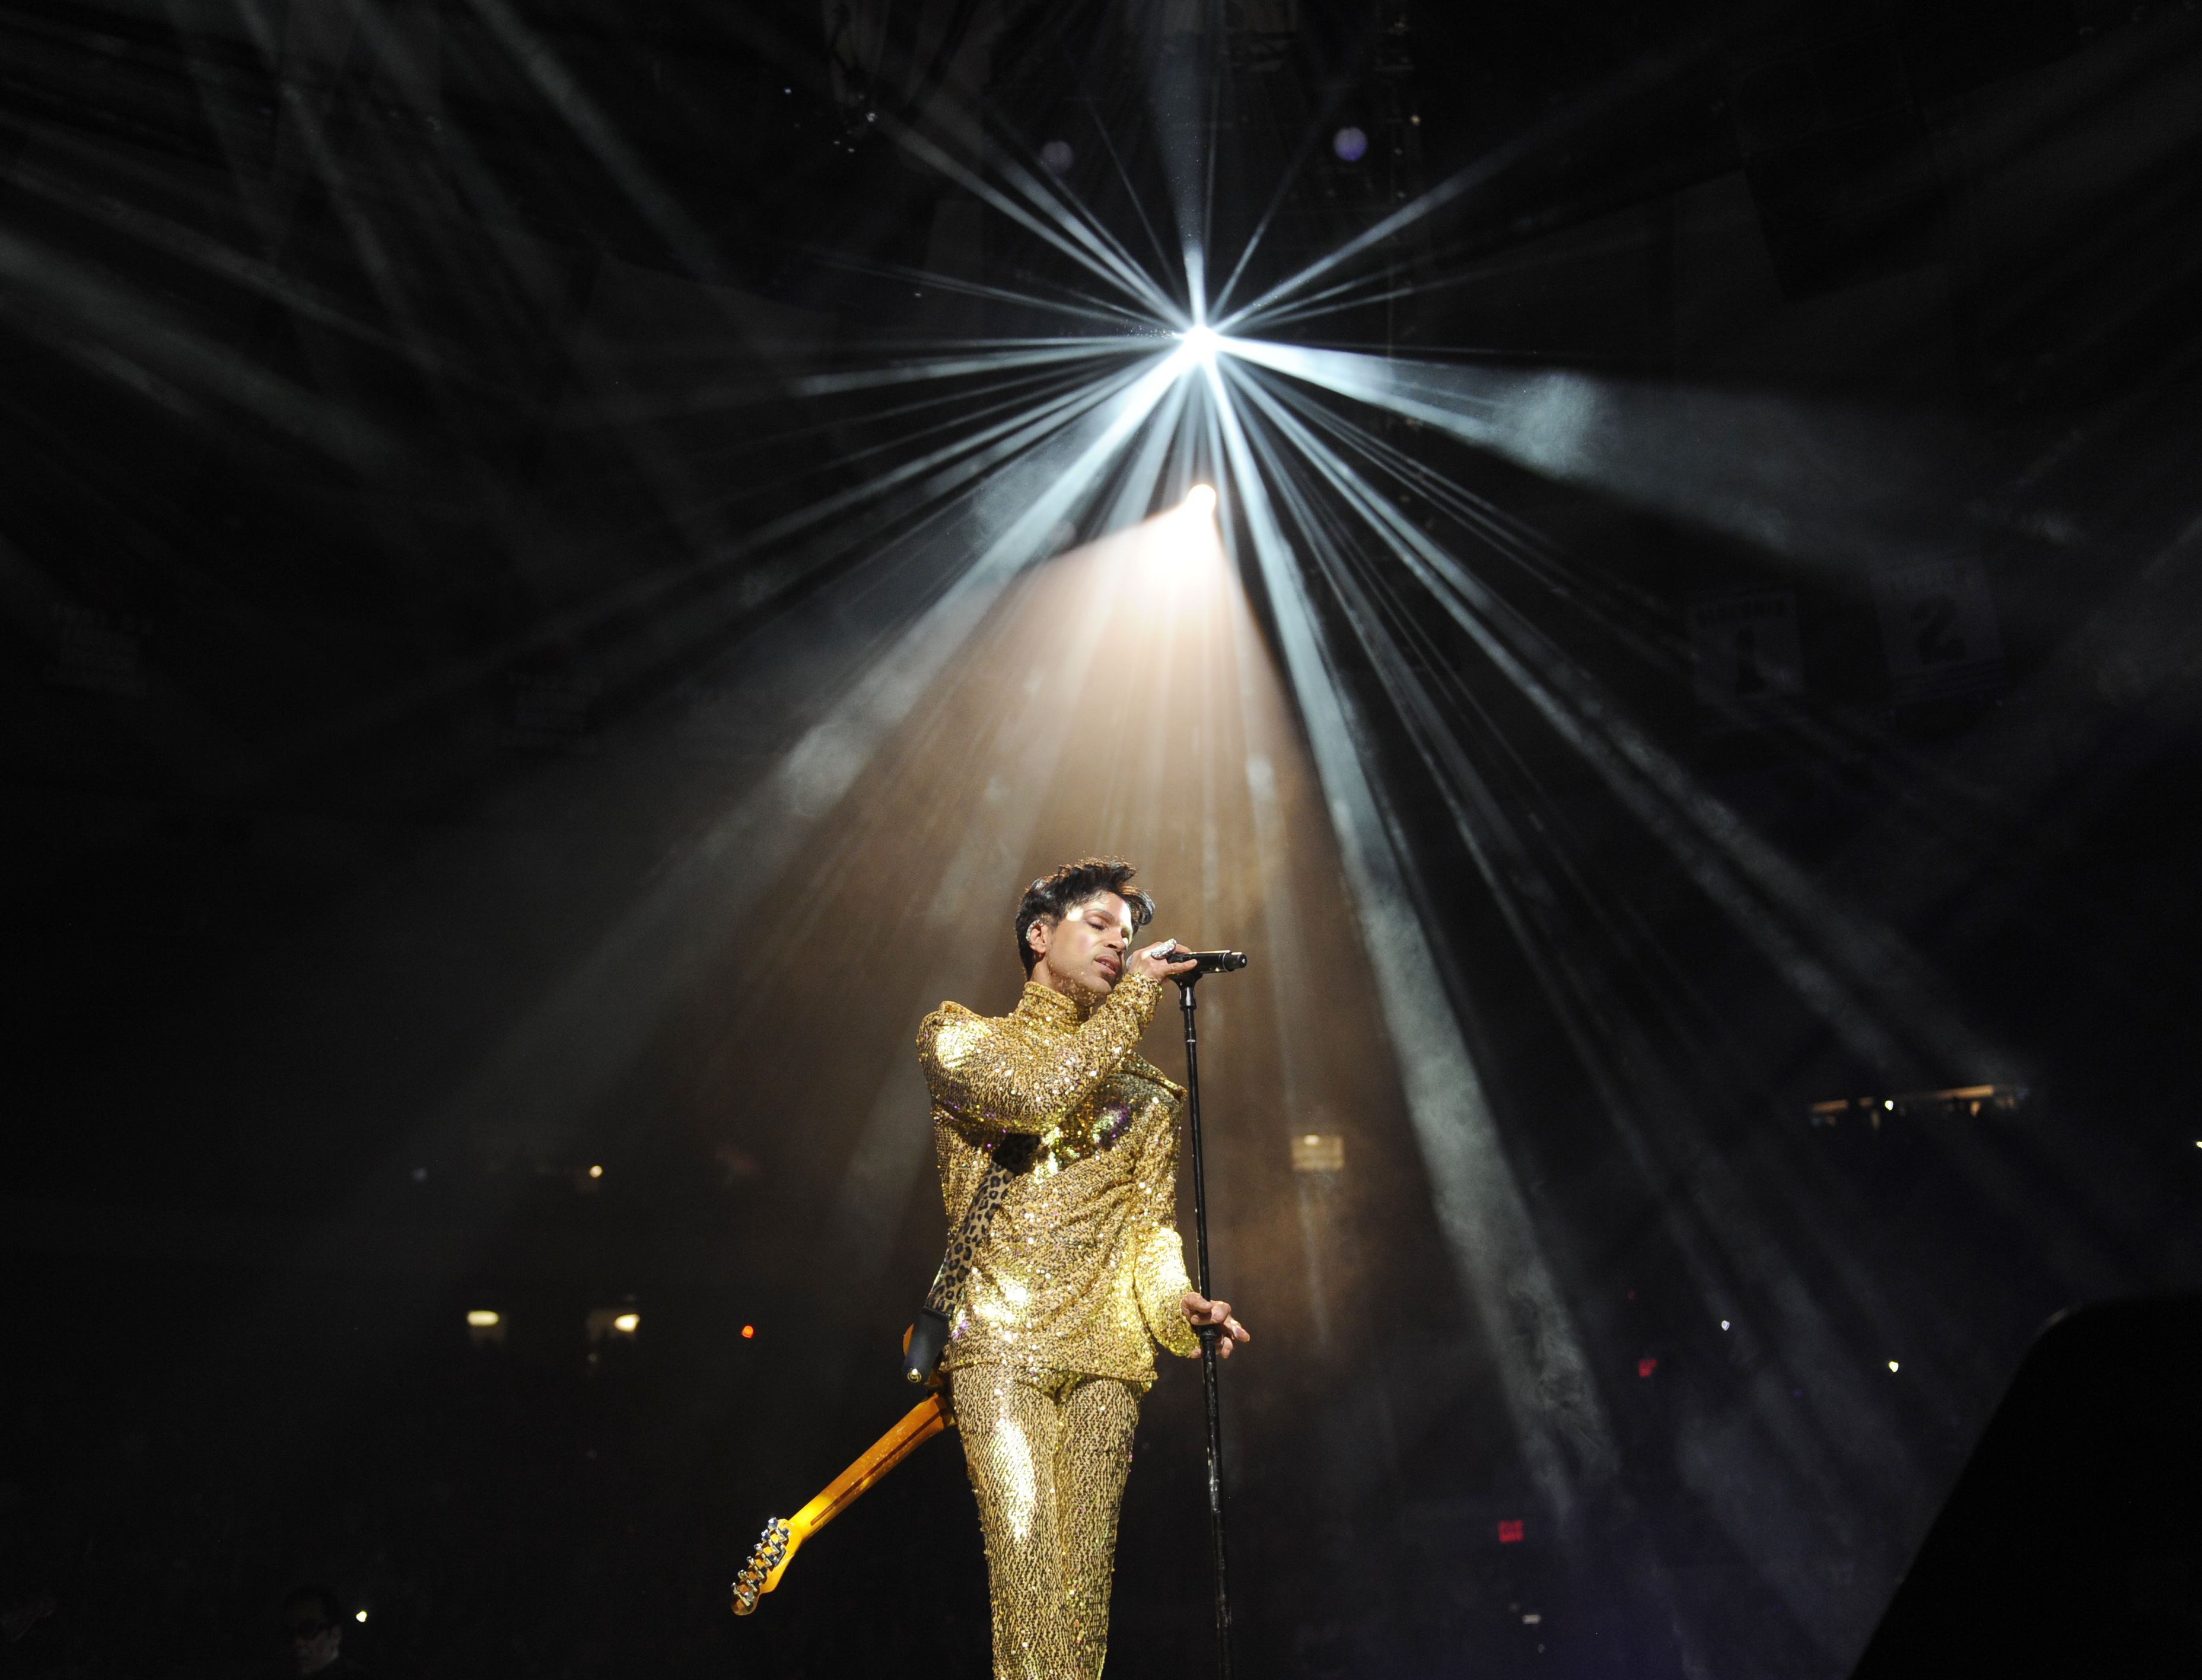 Prince performs during his  Welcome 2 America  tour at Madison Square Garden on Feb. 7, 2011 in New York.